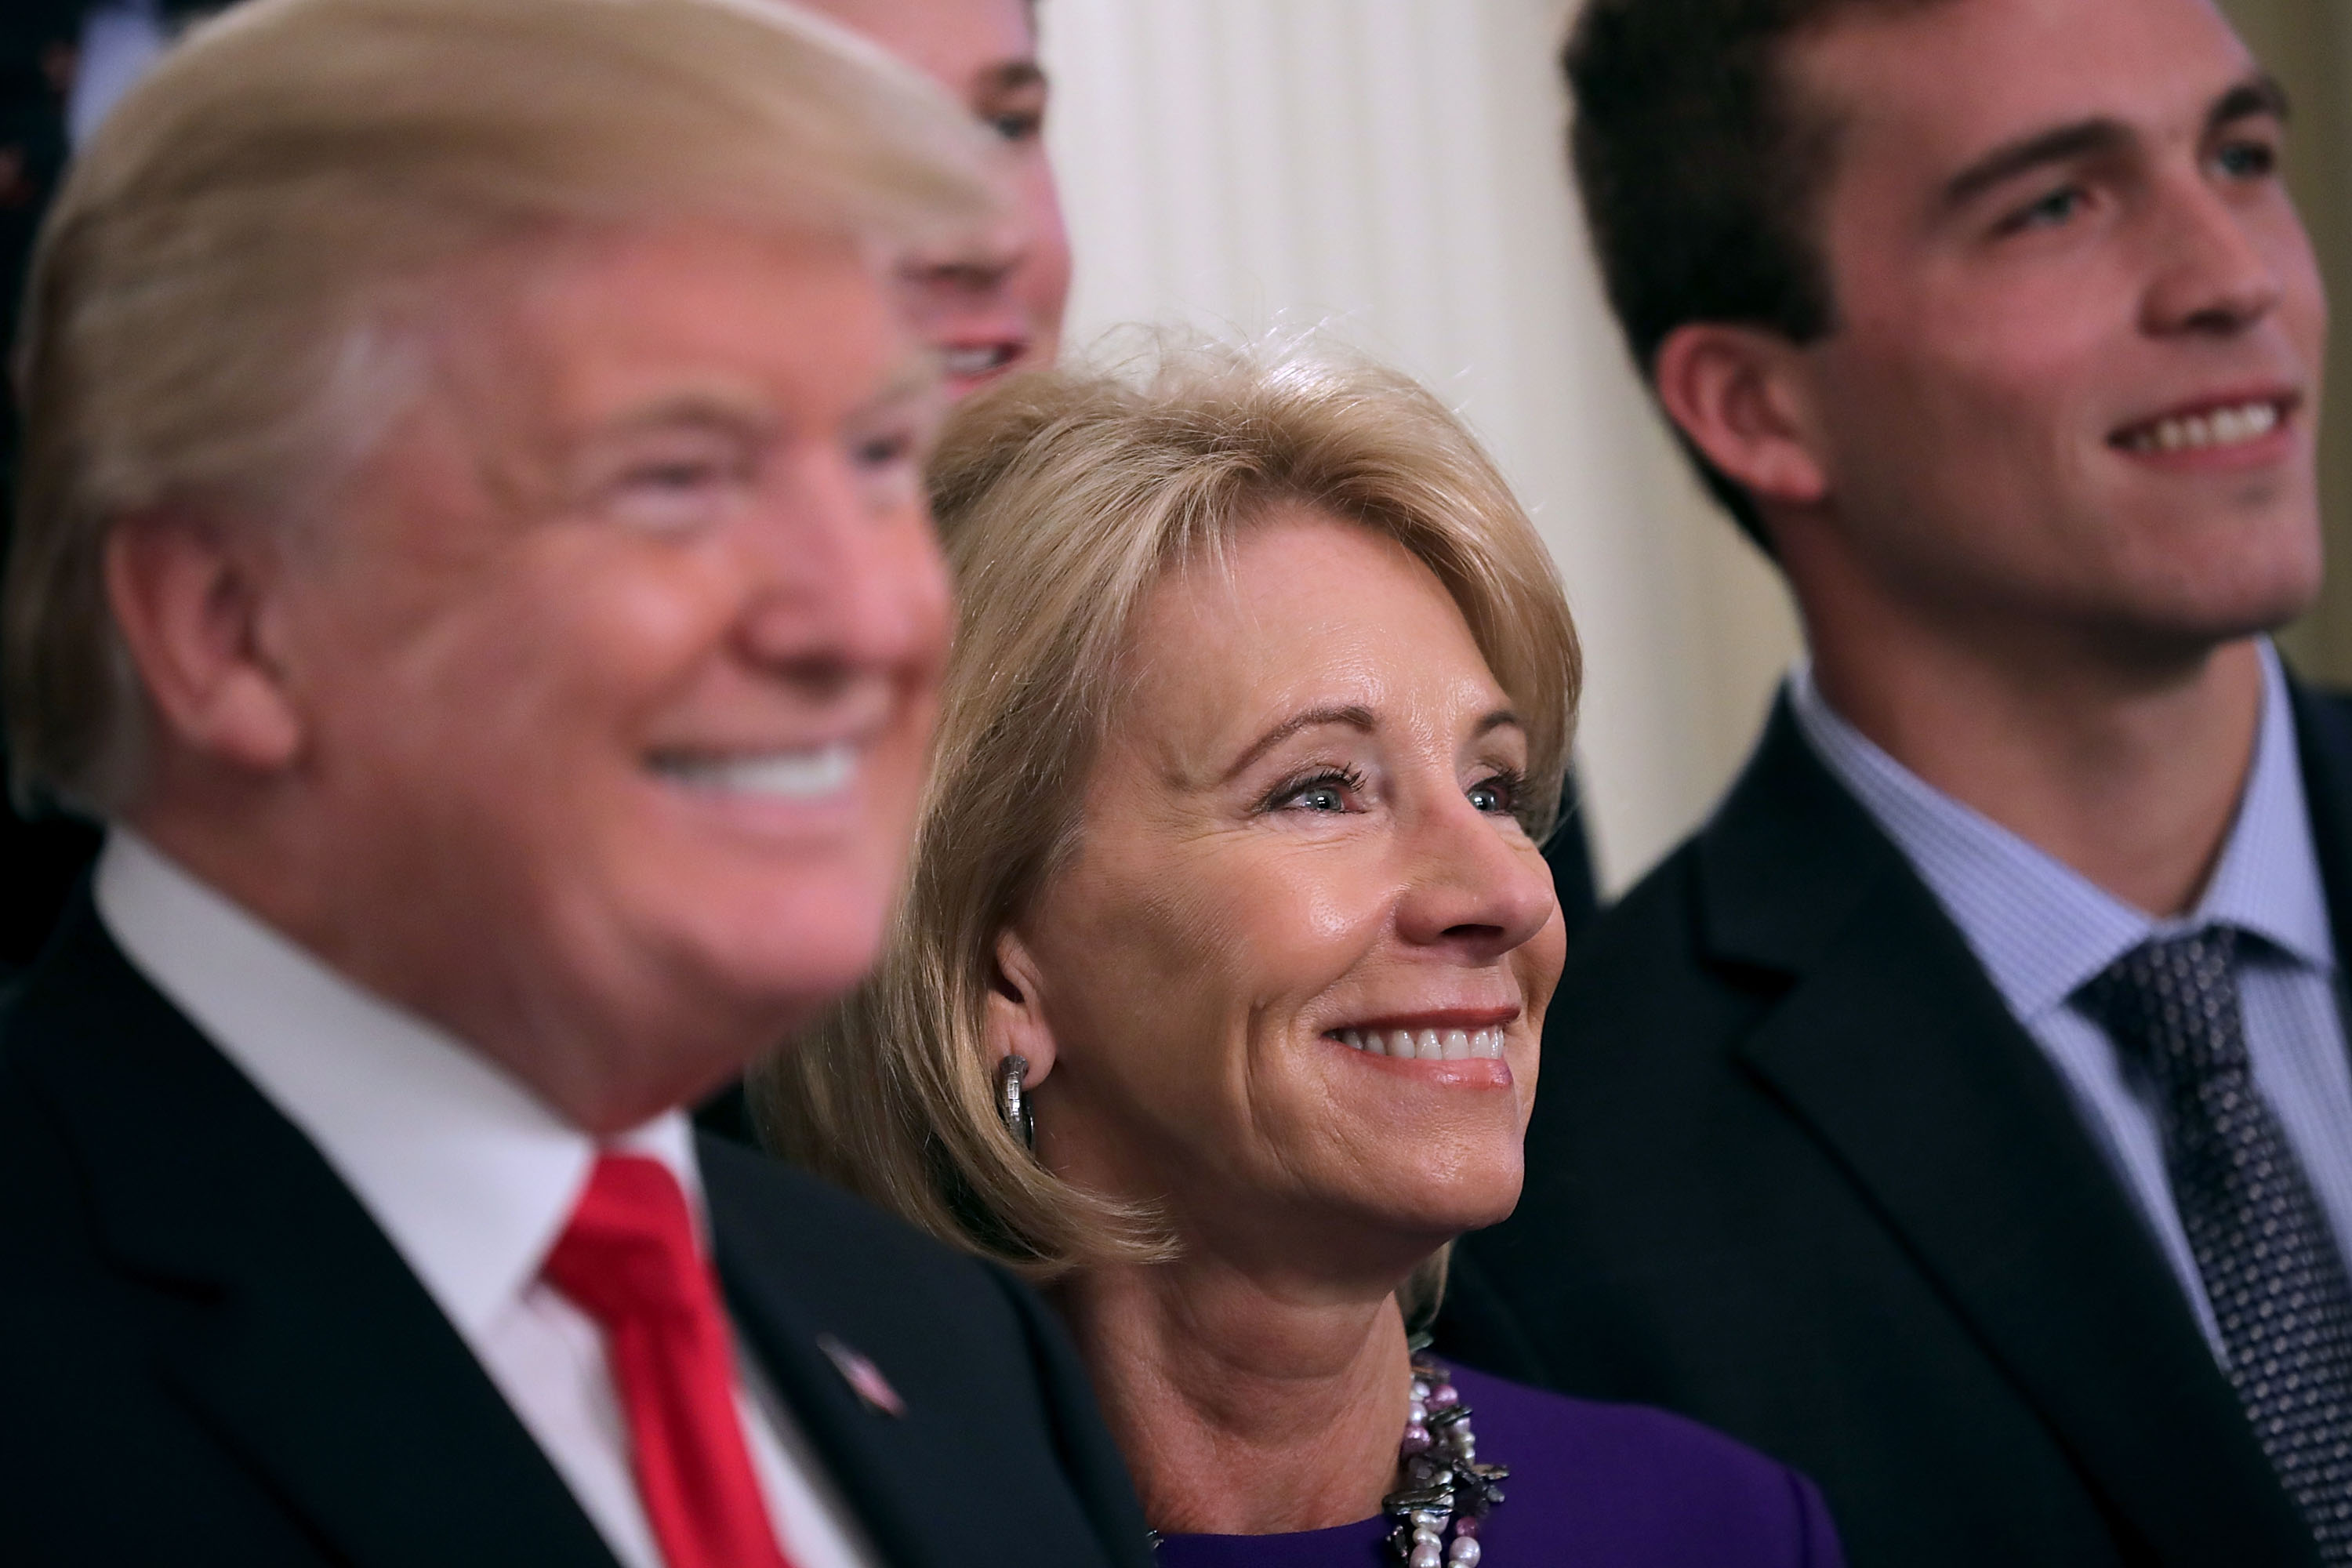 President Donald Trump and Education Secretary Betsy Devos pose for photographs with members of the National Collegiate Athletic Association's champion University of Virginia men's tennis team in the East Room of the White House on Nov. 17, 2017 in Washington, D.C.